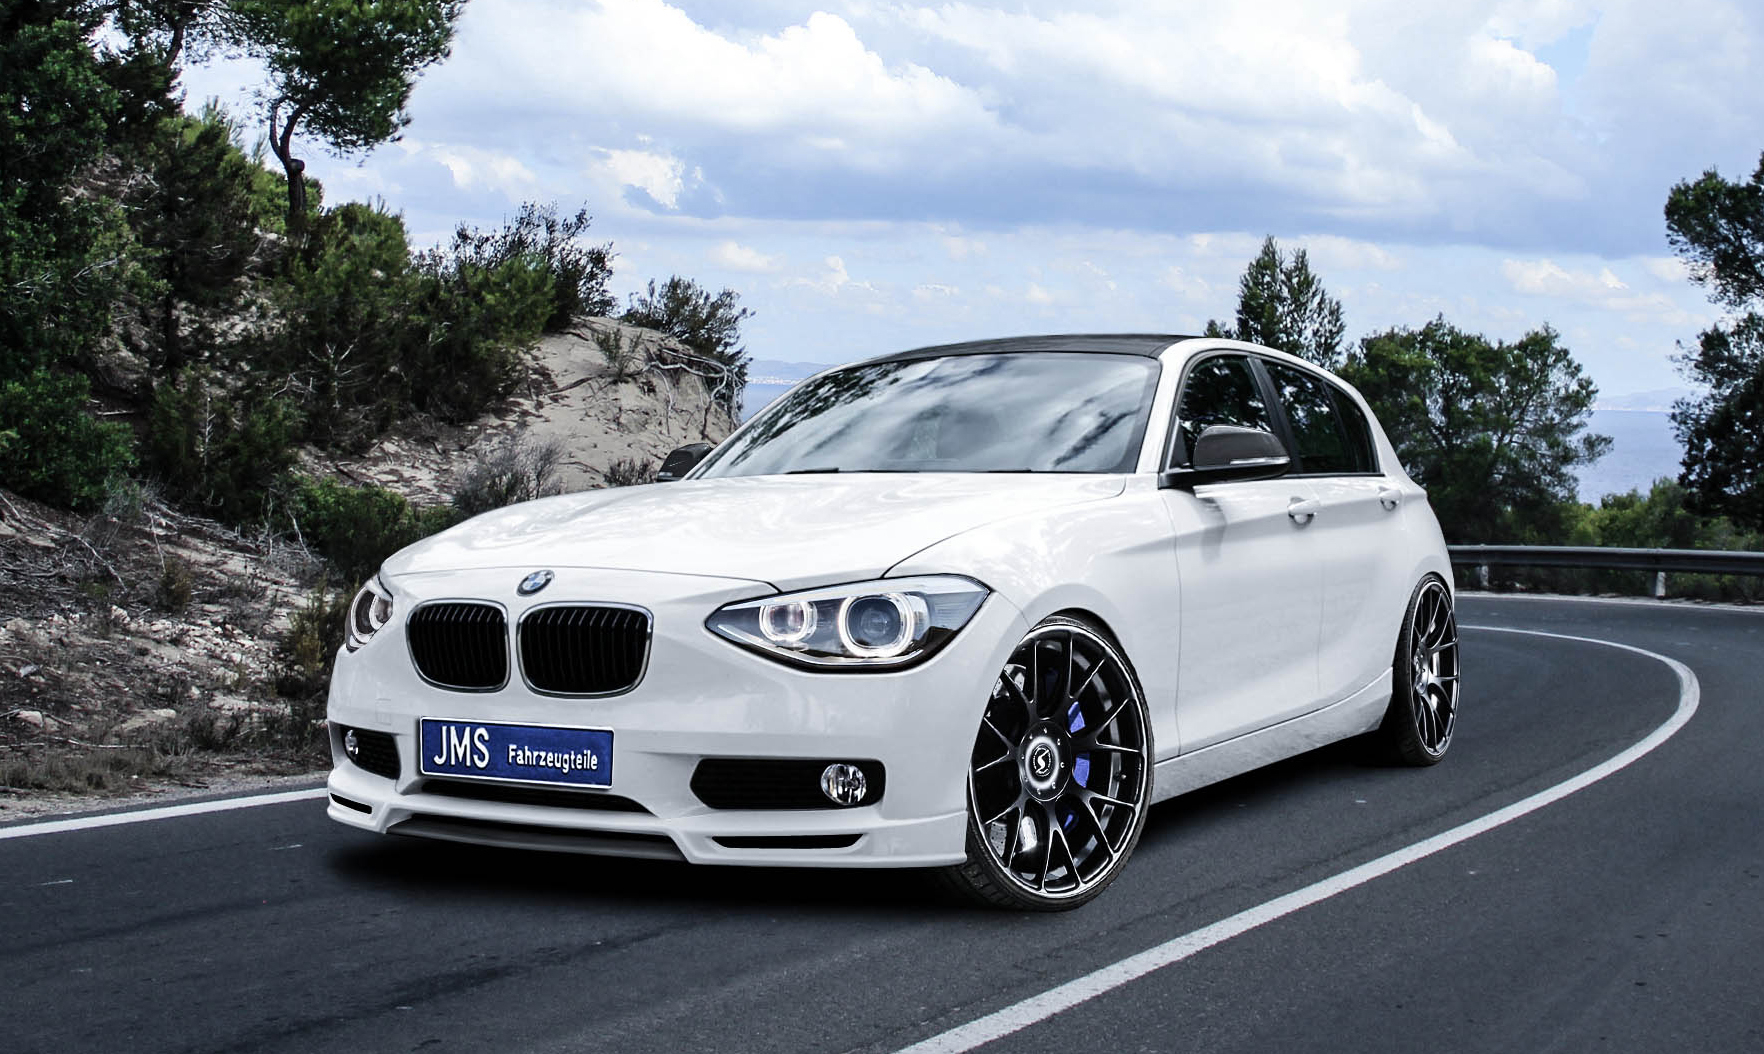 f20 bmw 1 series tuning by jms autoevolution. Black Bedroom Furniture Sets. Home Design Ideas